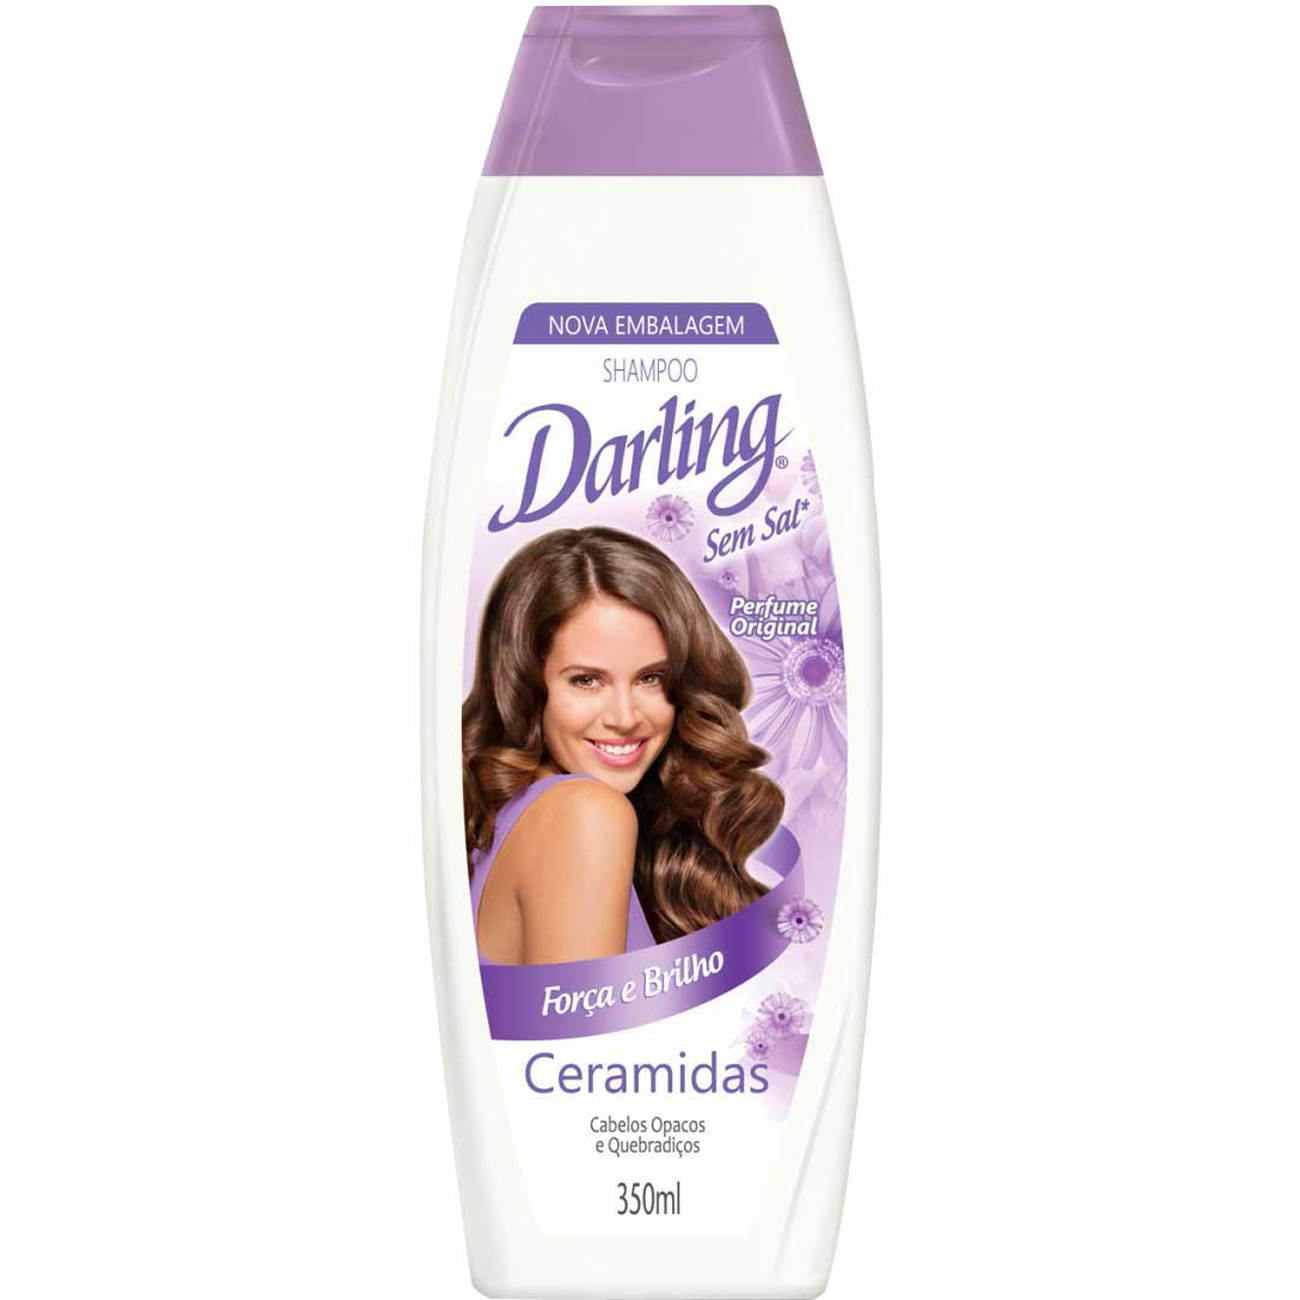 Shampoo Darling Ceramidas 350Ml